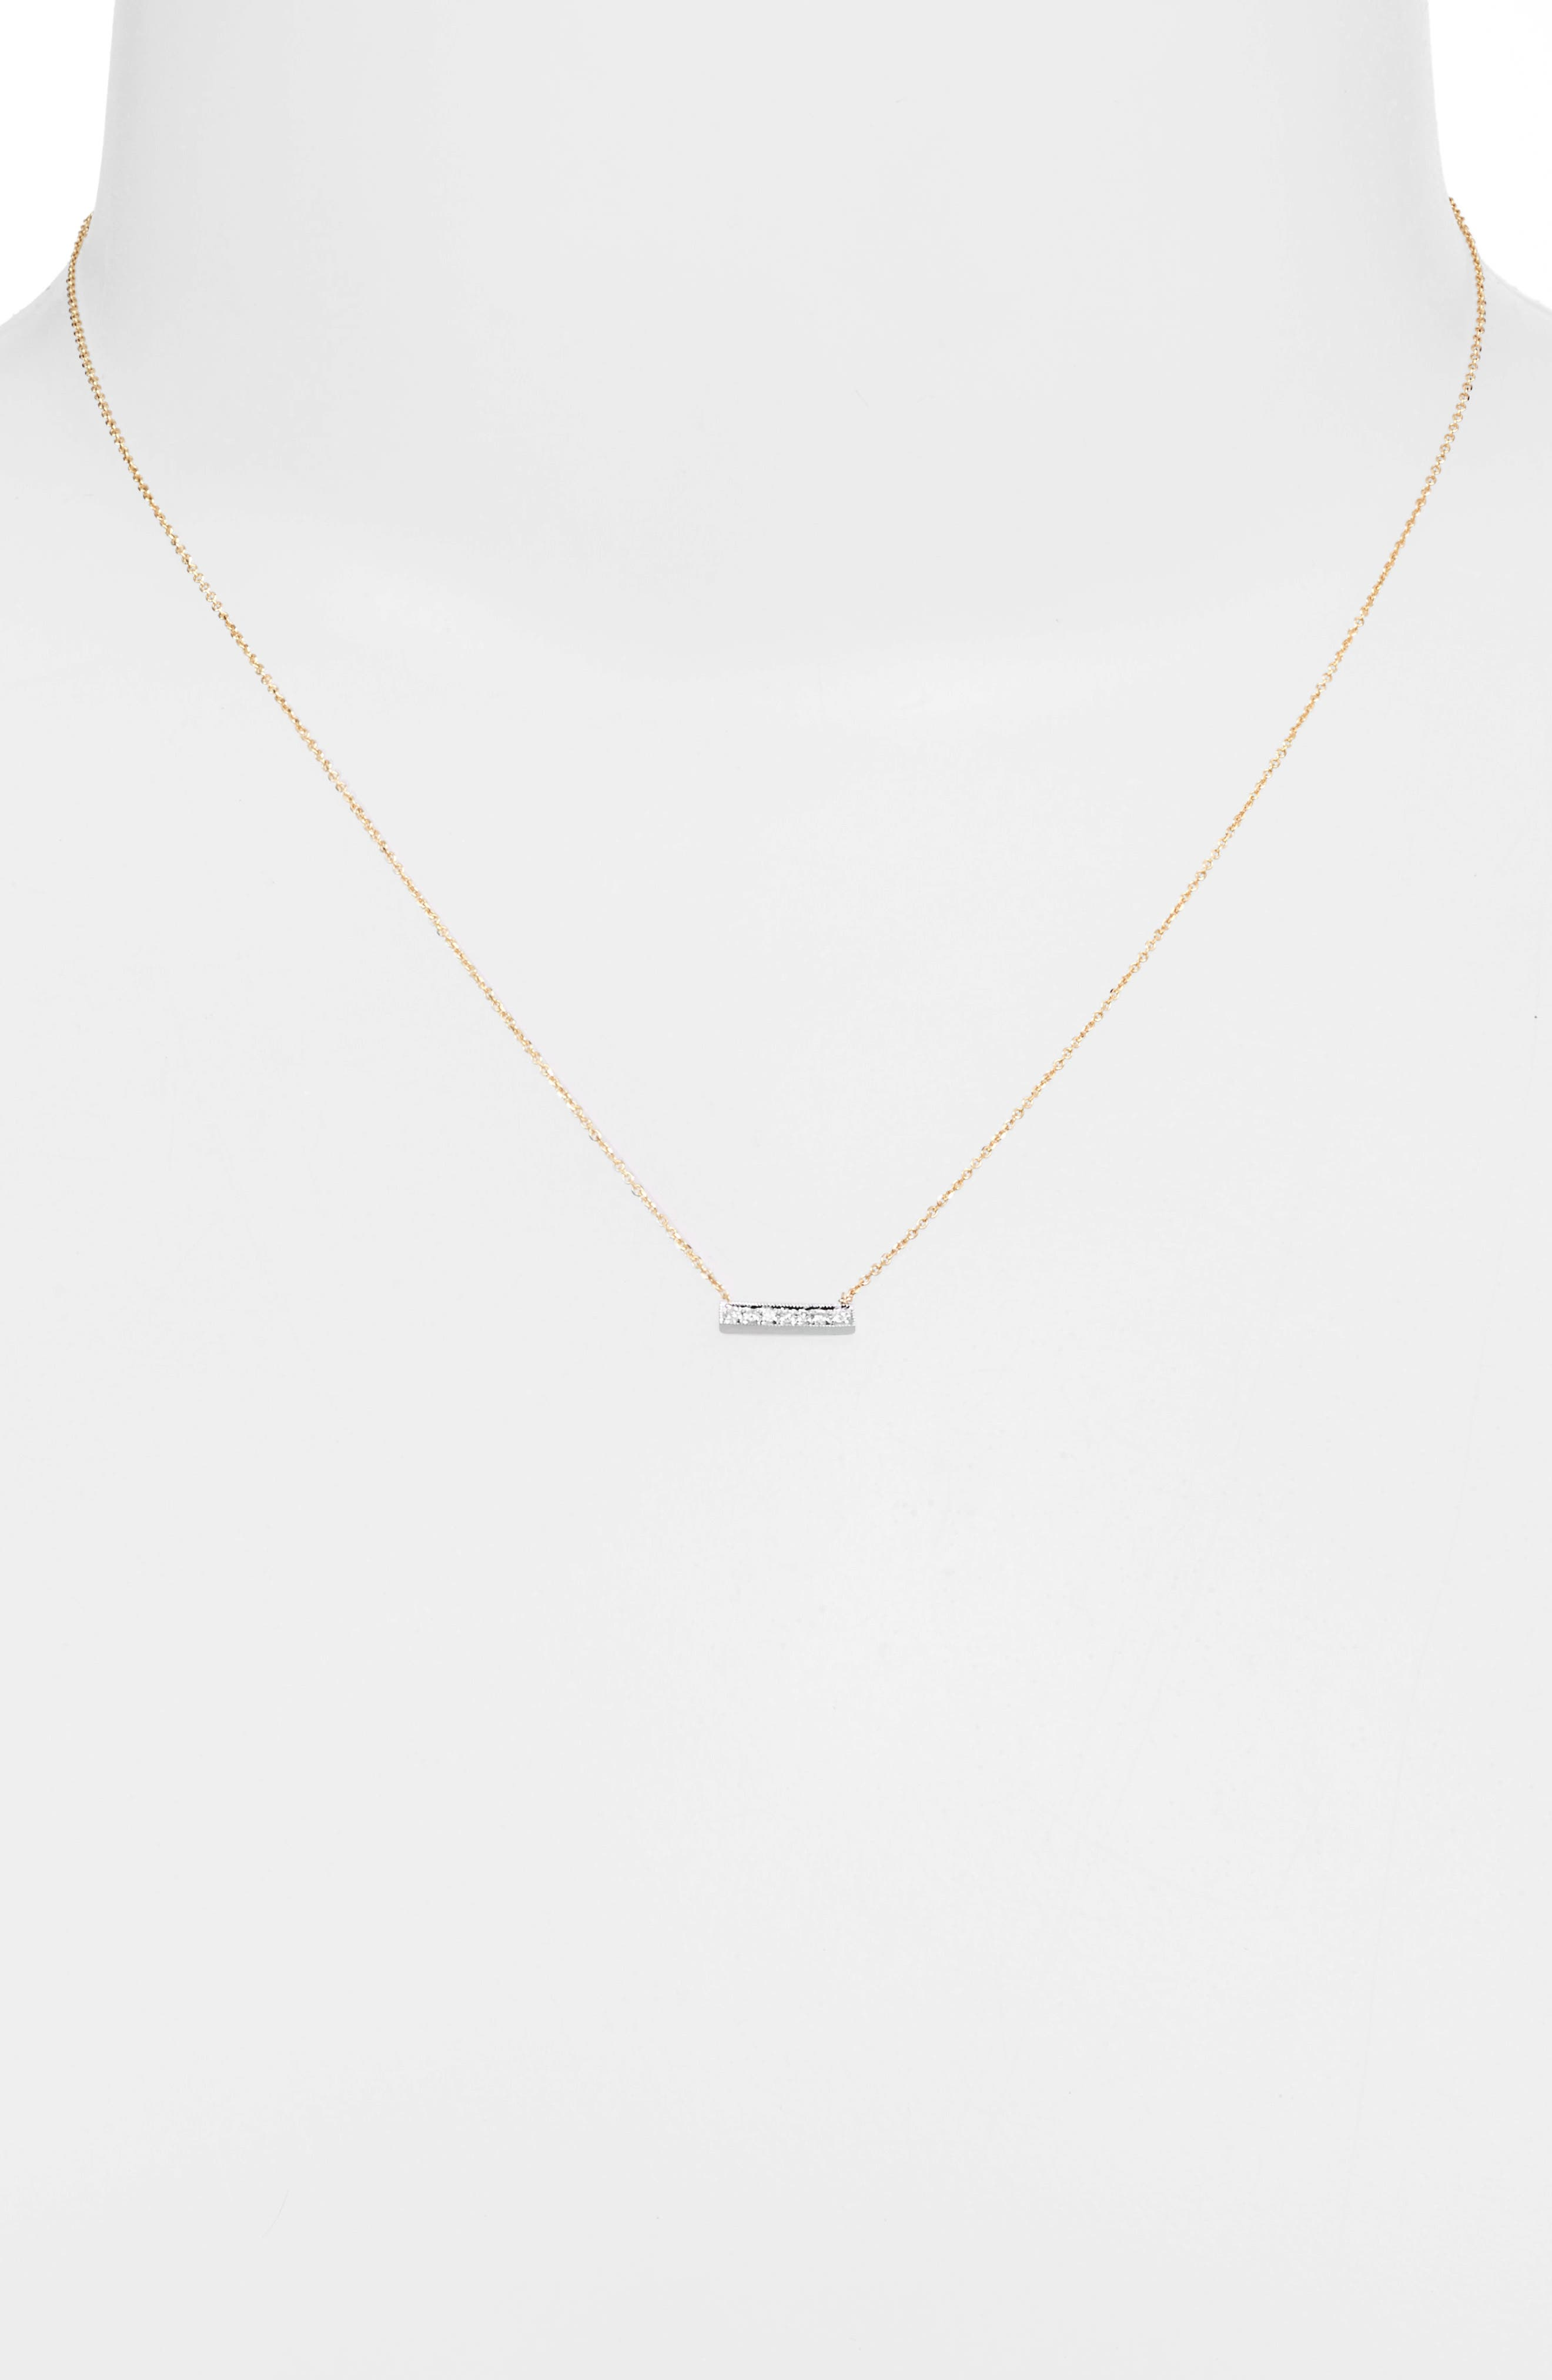 'Sylvie Rose' Diamond Bar Pendant Necklace,                             Alternate thumbnail 4, color,                             YELLOW GOLD